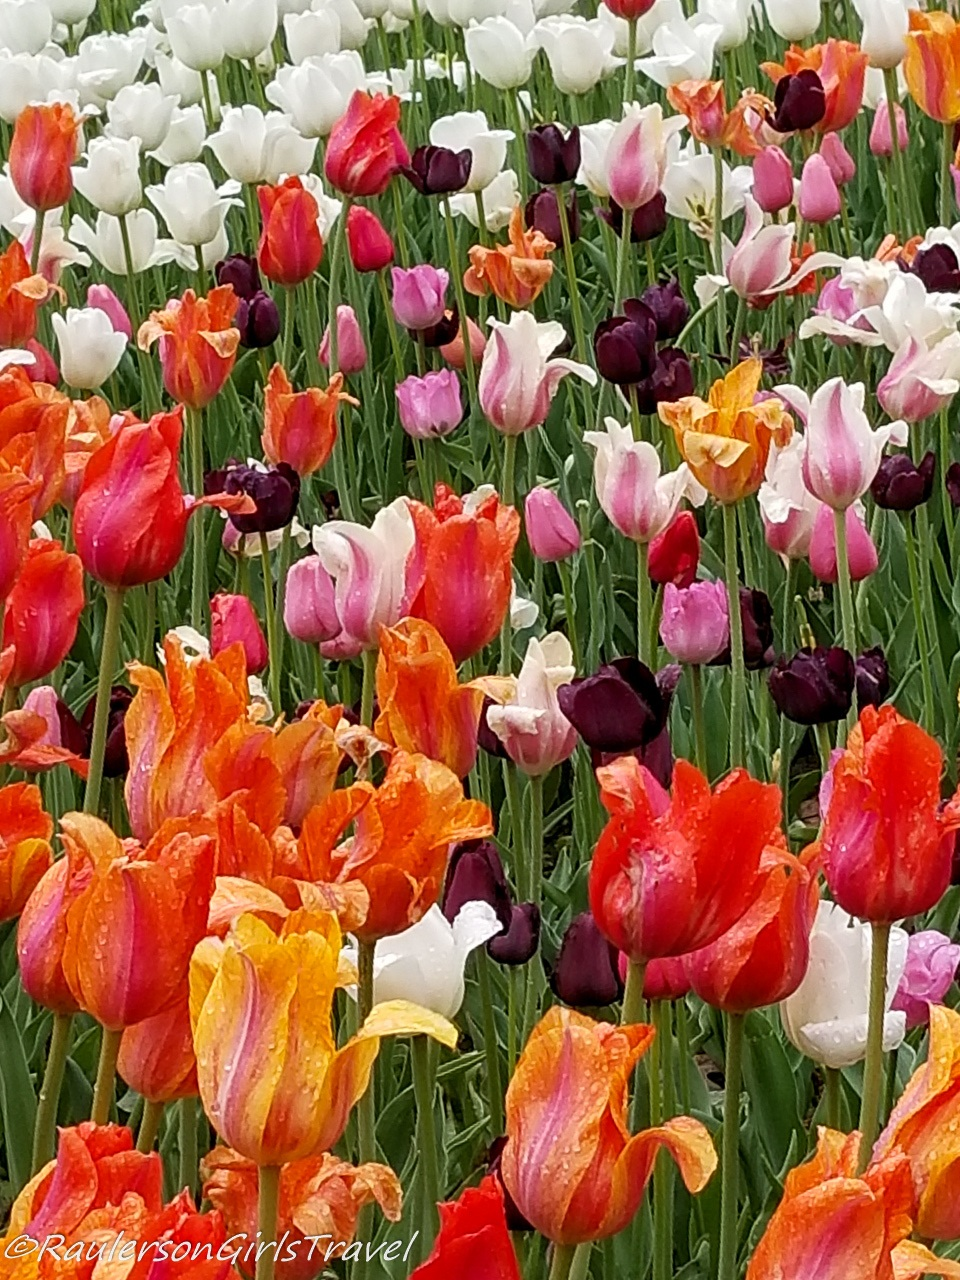 Bright and colorful tulips at the Holland Tulip Festival